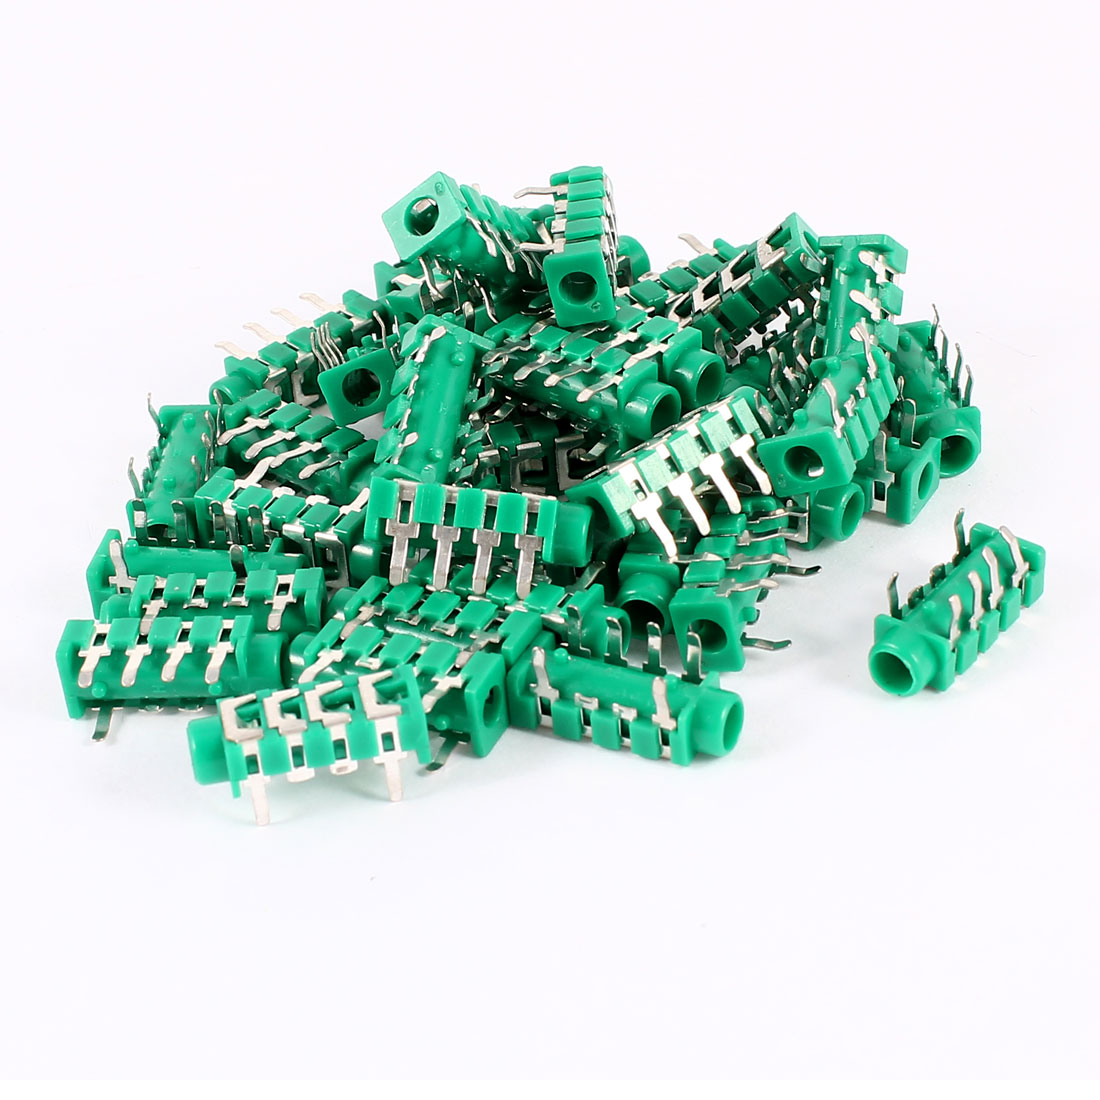 40 Pcs MP3 Earphone Headset 6 Pin PCB Mount 3.5mm Jack Socket Audio Connector